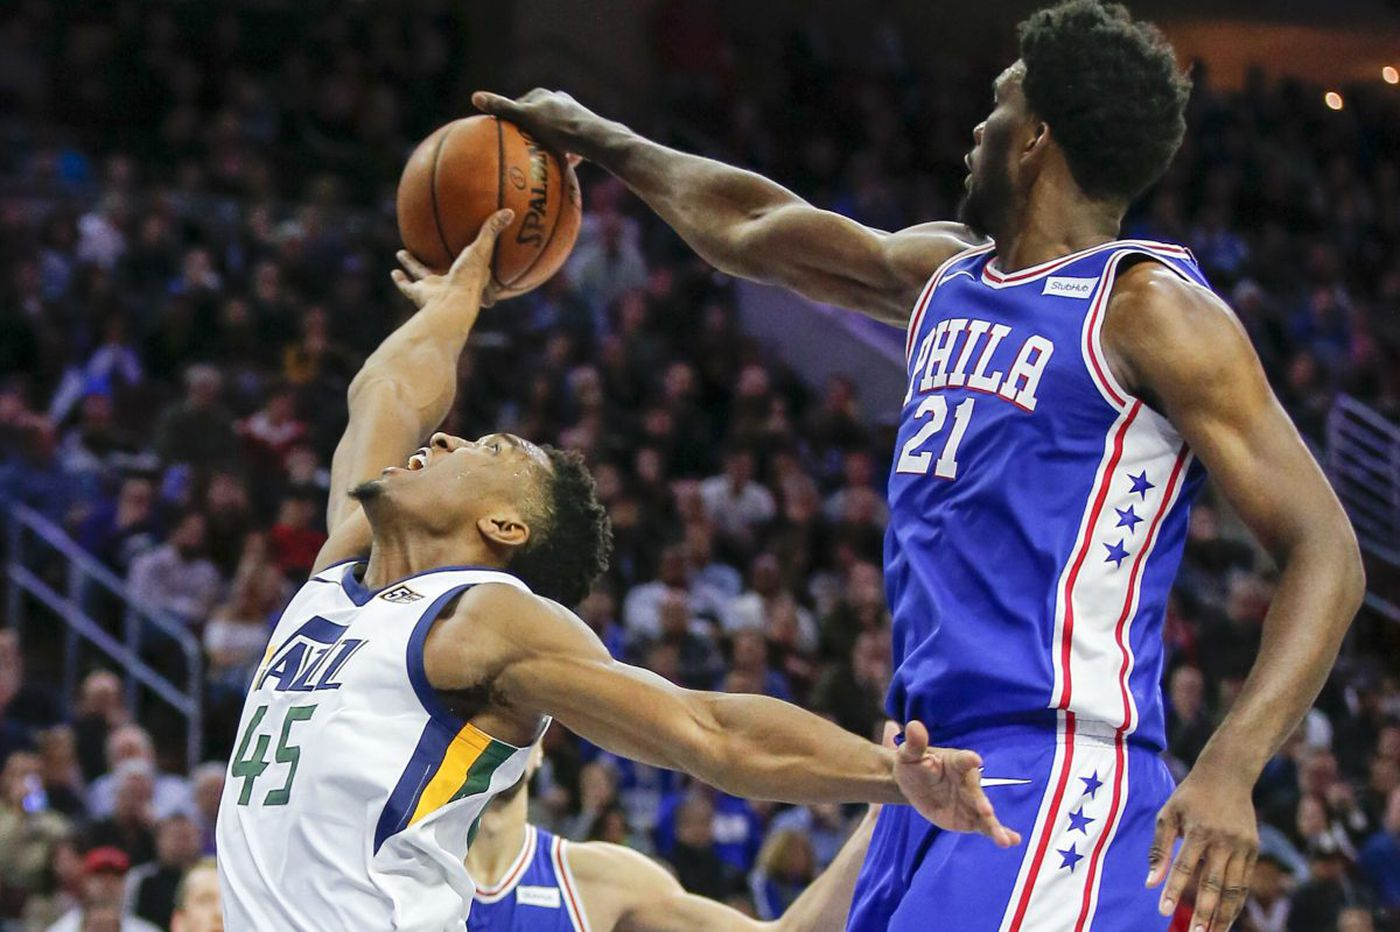 Sixers' Joel Embiid: I think I'm the best defensive player in the league right now